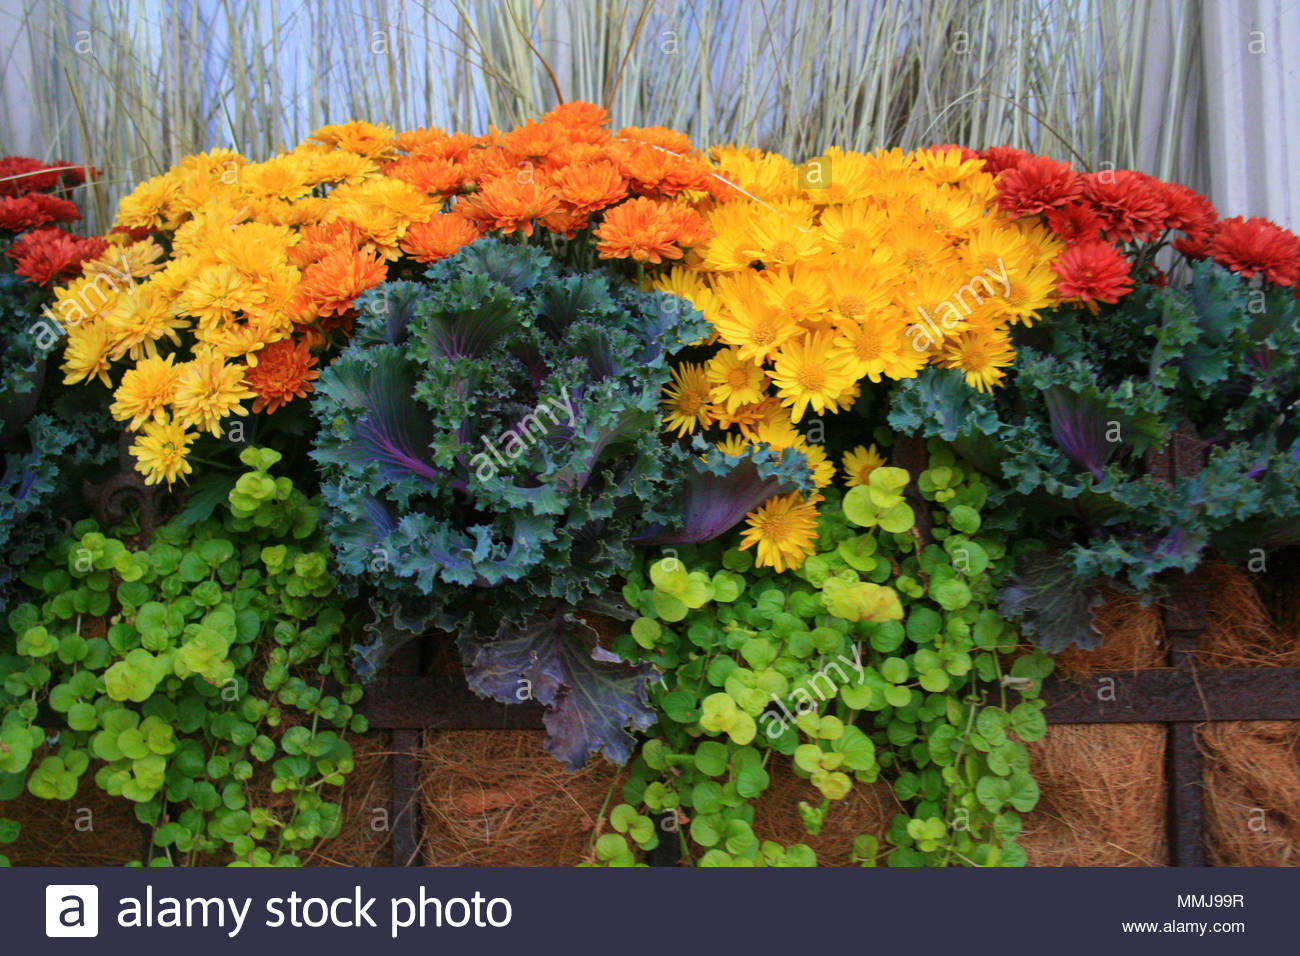 Fall flowers and decorative cabbage plants in a flower box on a fall flowers and decorative cabbage plants in a flower box on a windowsill izmirmasajfo